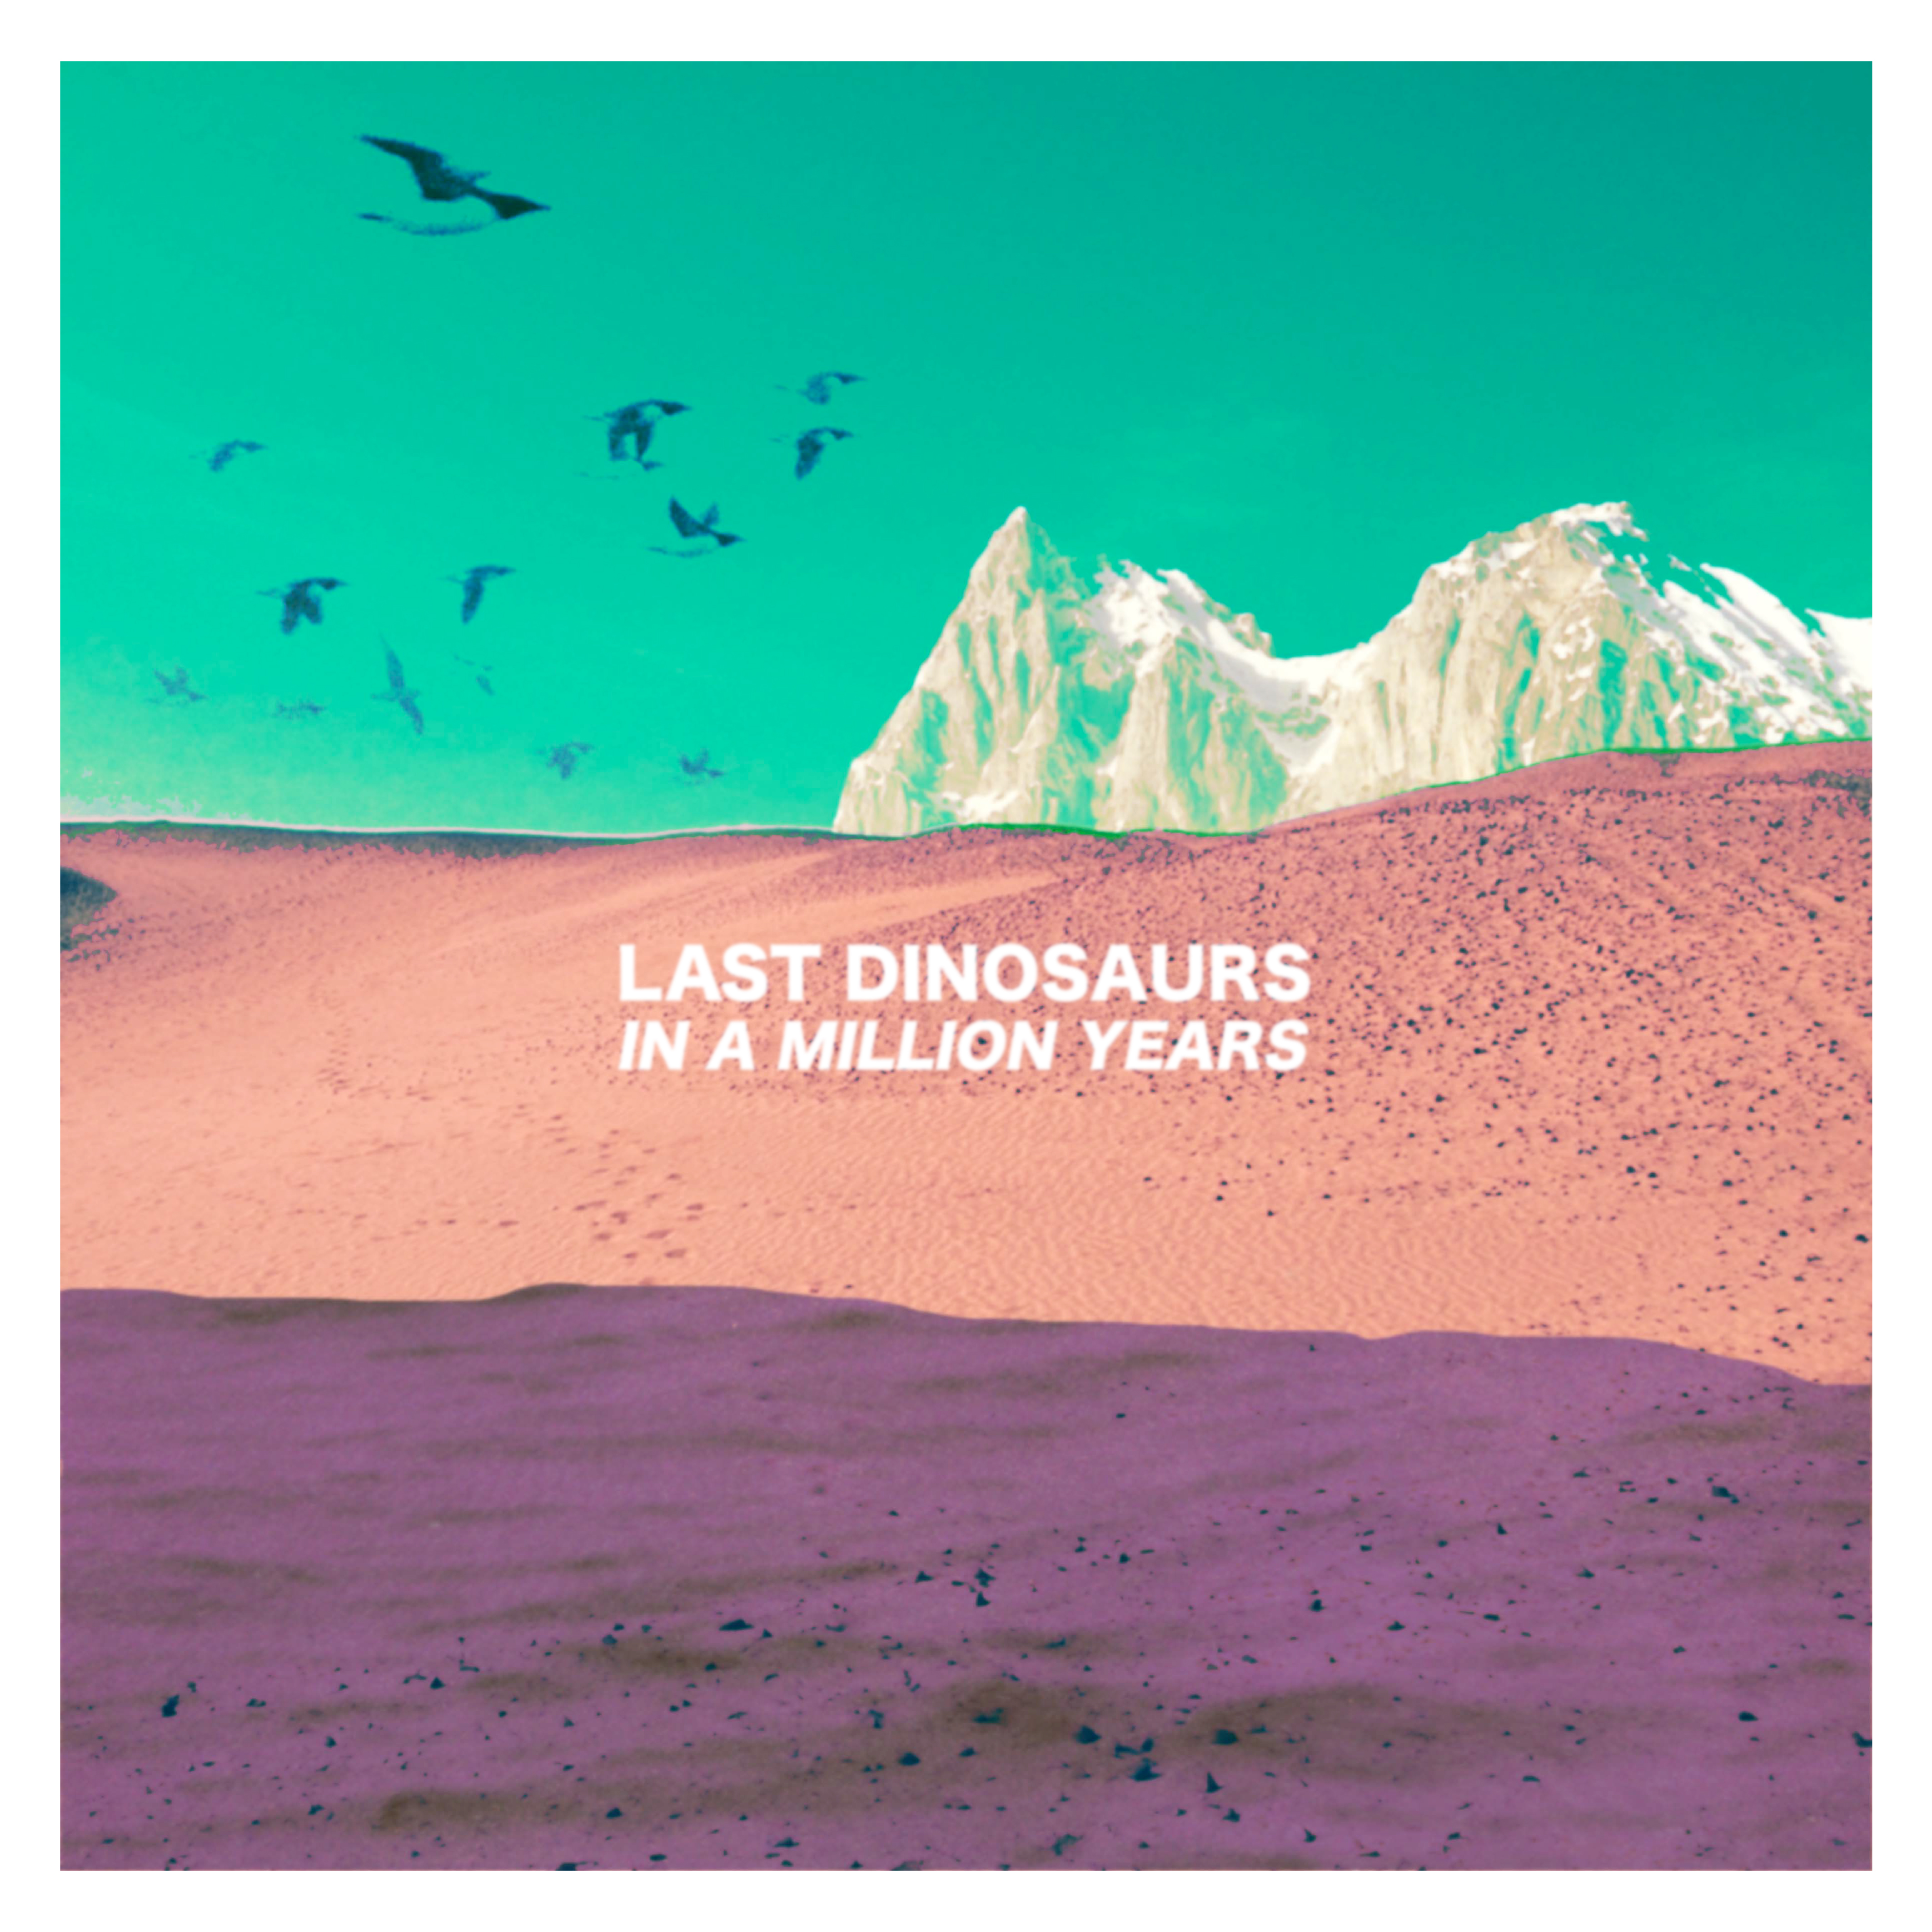 In A Million Years by Last Dinosaurs